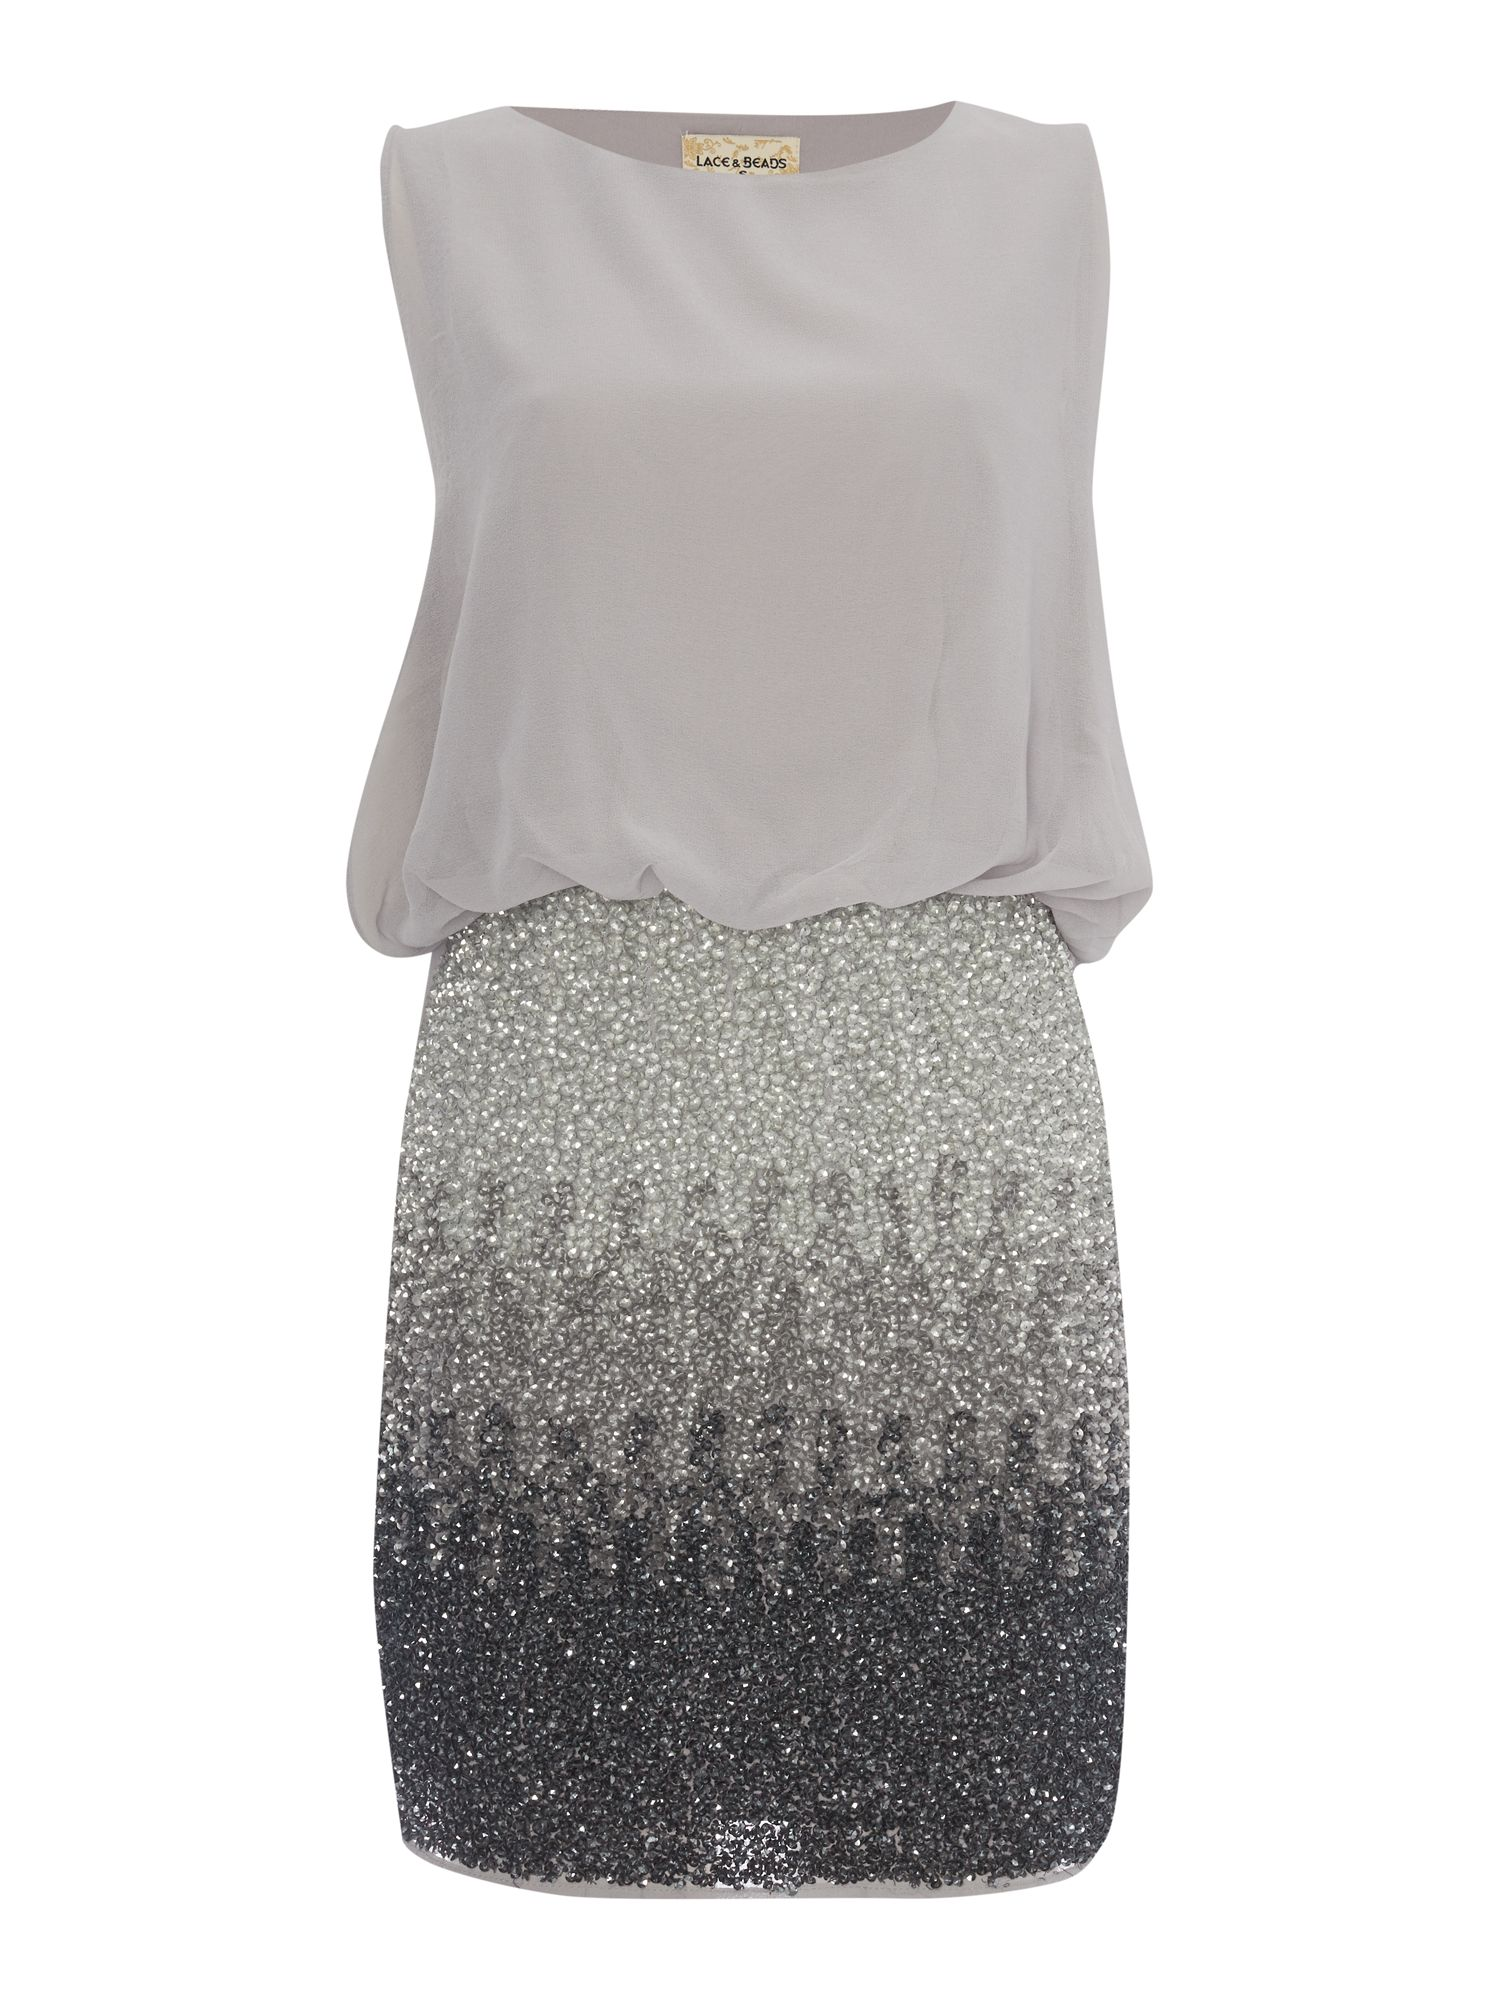 Lace and Beads Lace and Beads Sleeveless Blouson Top Ombre Sequin Skirt Dress, Grey